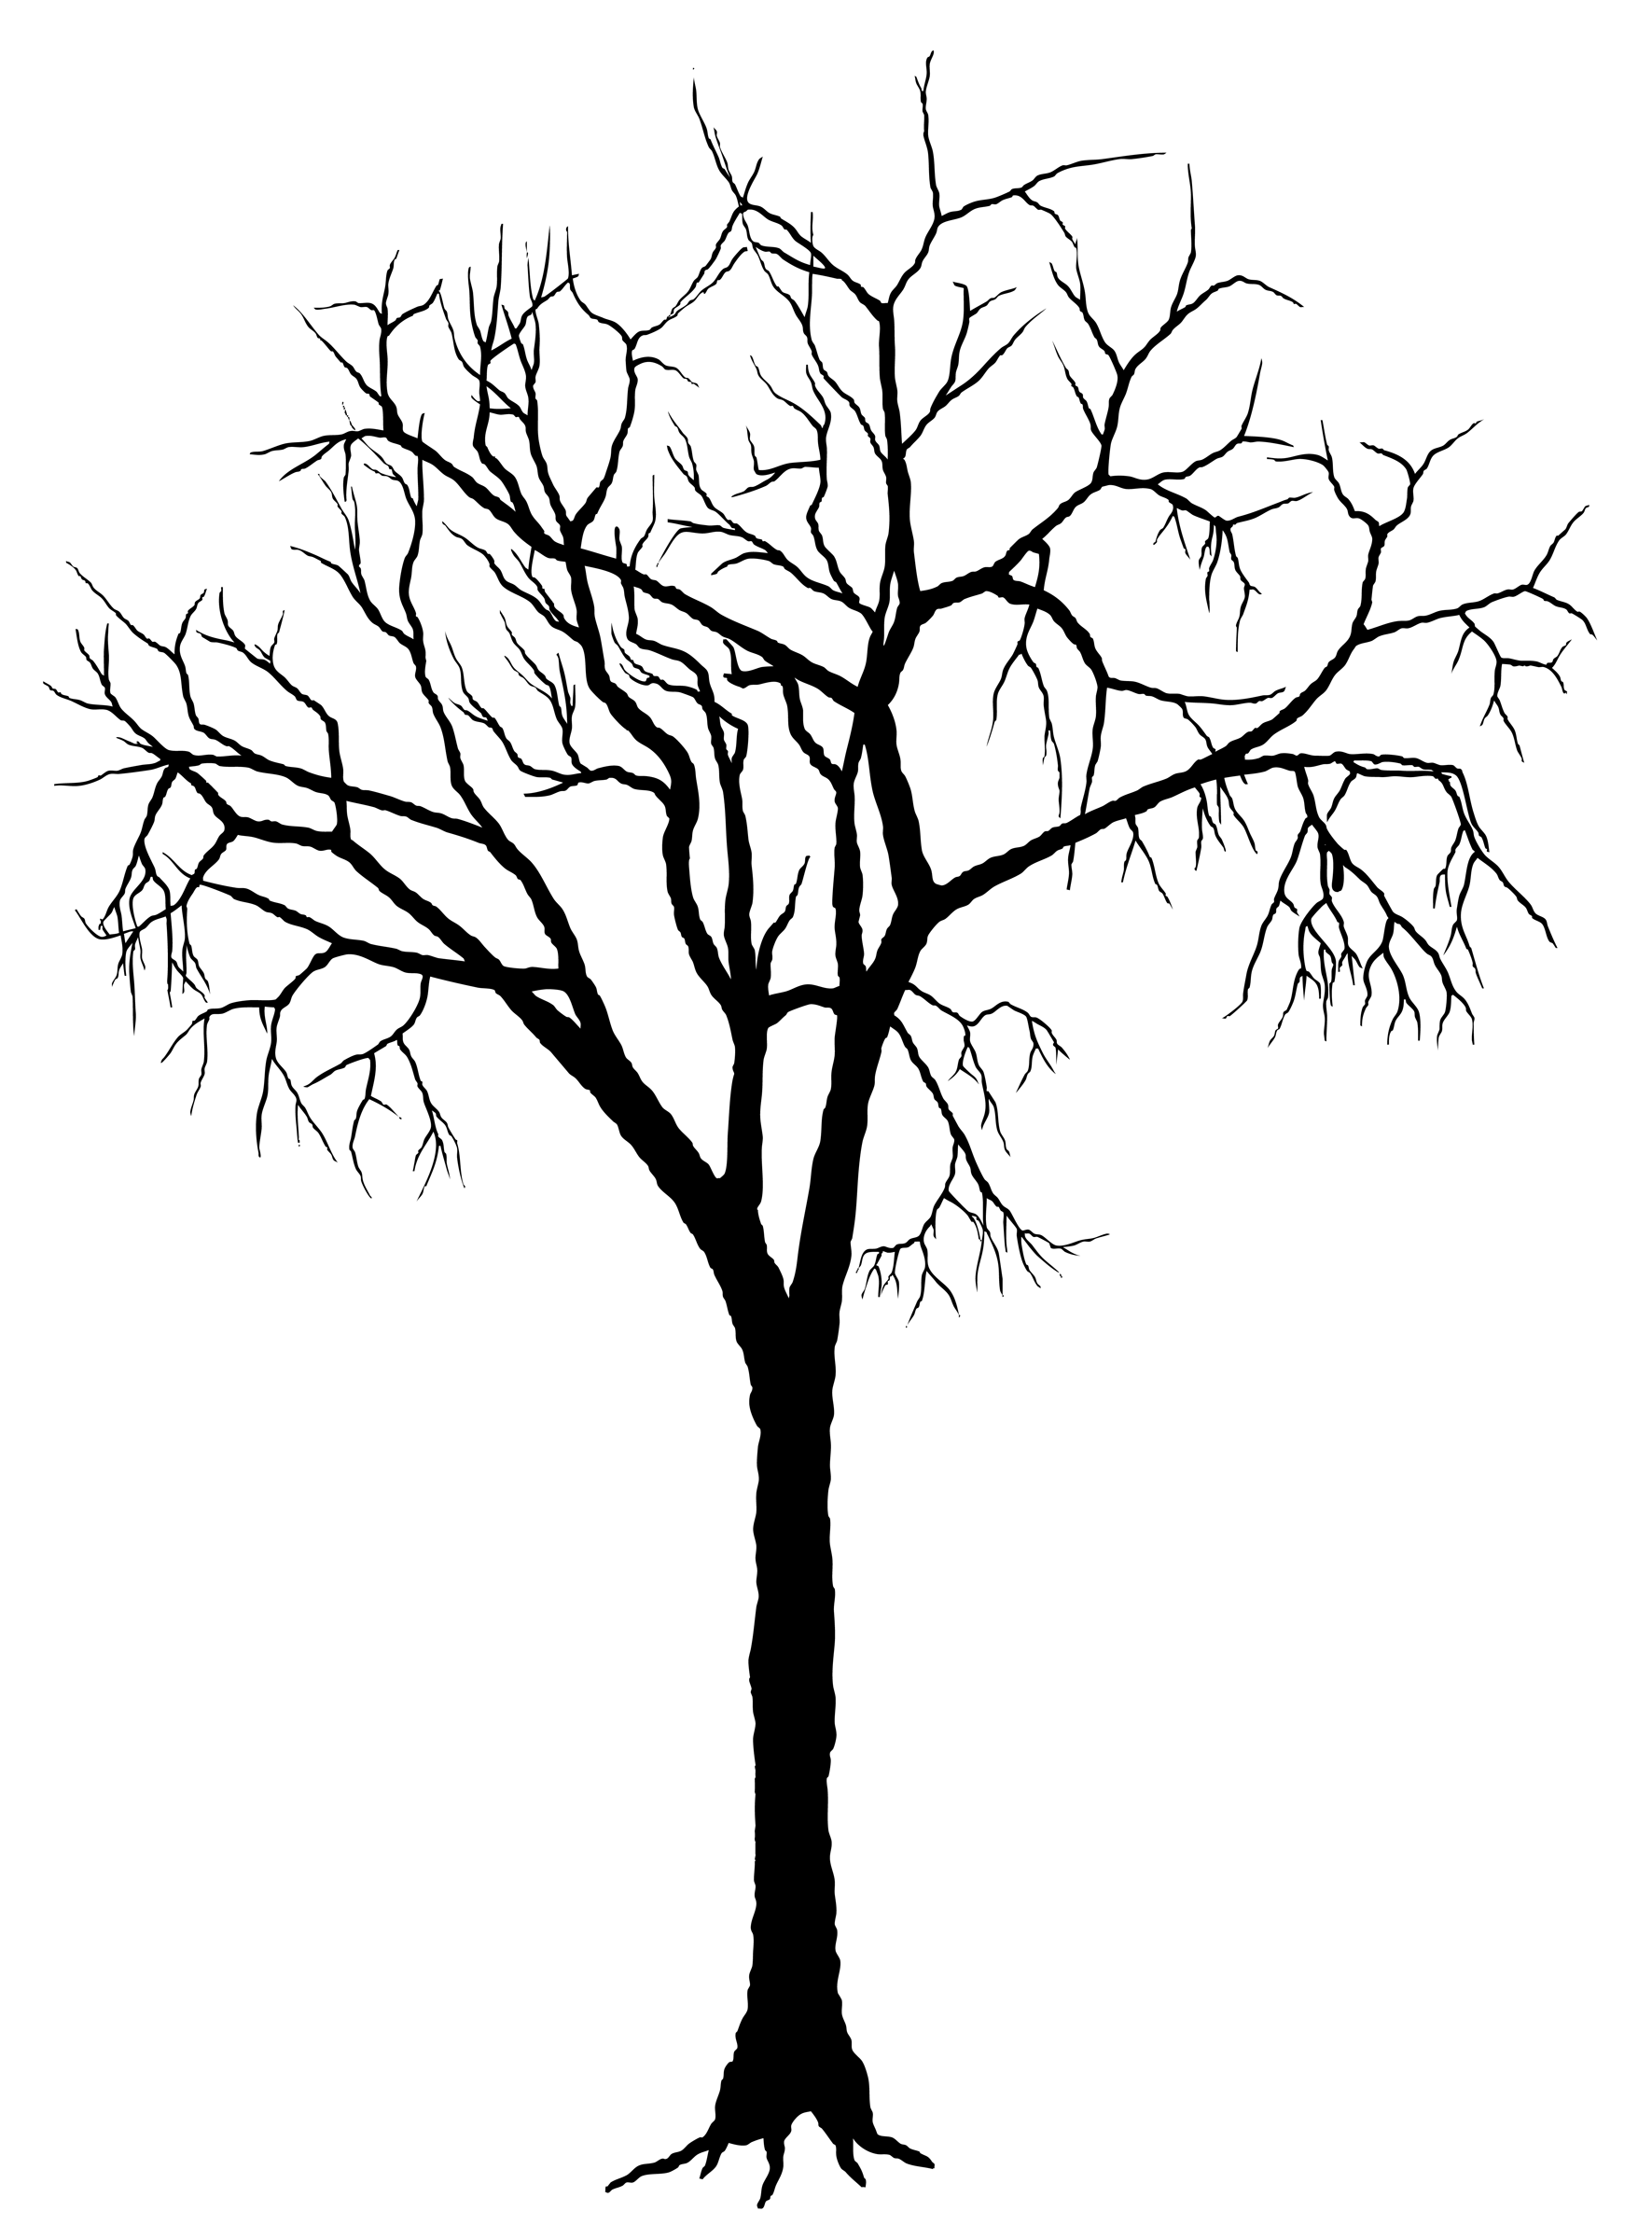 Silhouette Of A Tree in addition Tombstone Template Printable furthermore Search together with Stencils Of Joker as well Flacher Kuerbis. on scary halloween silhouette patterns